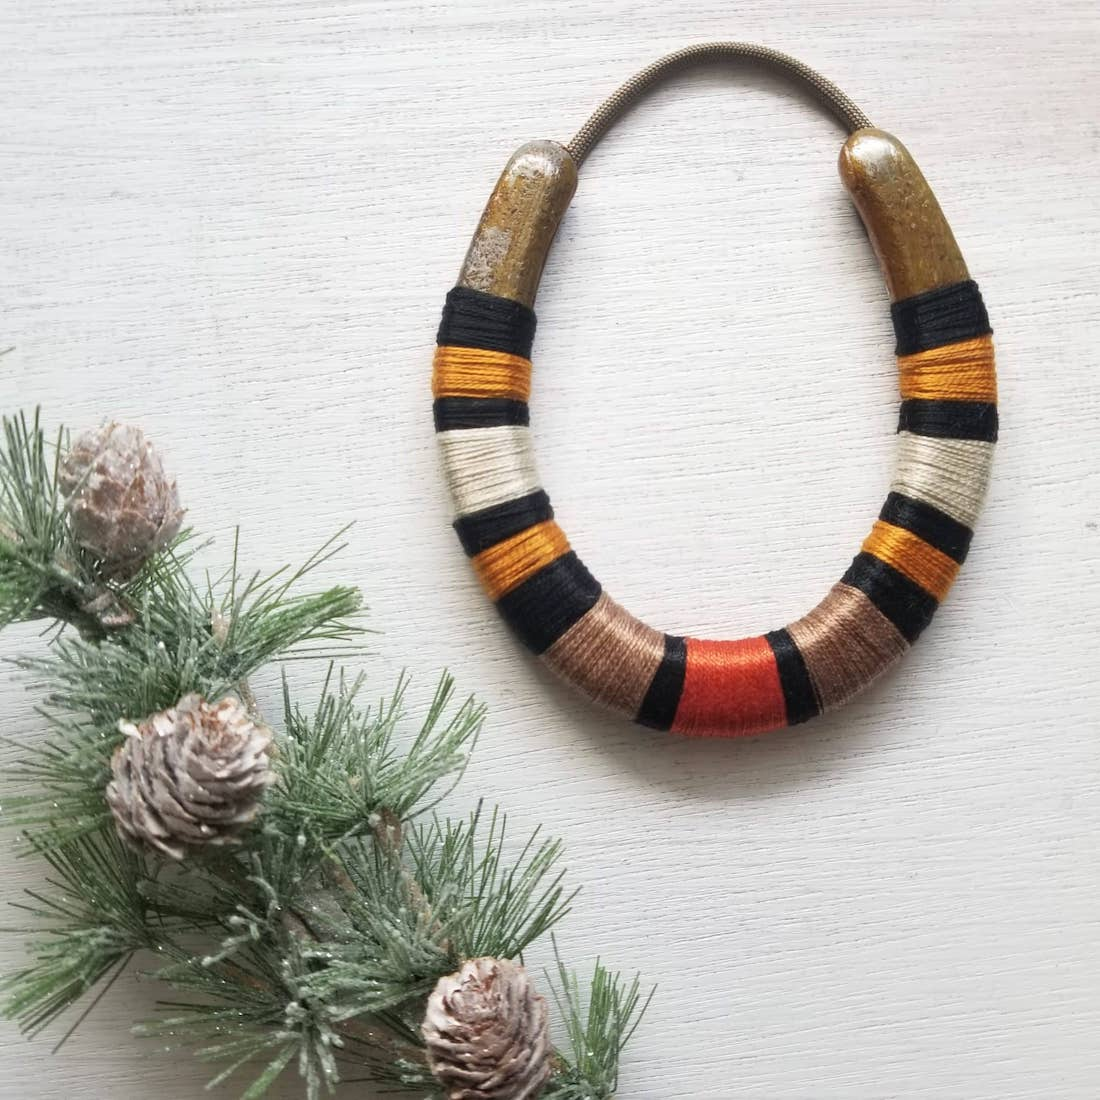 Gift Ideas from Small Businesses